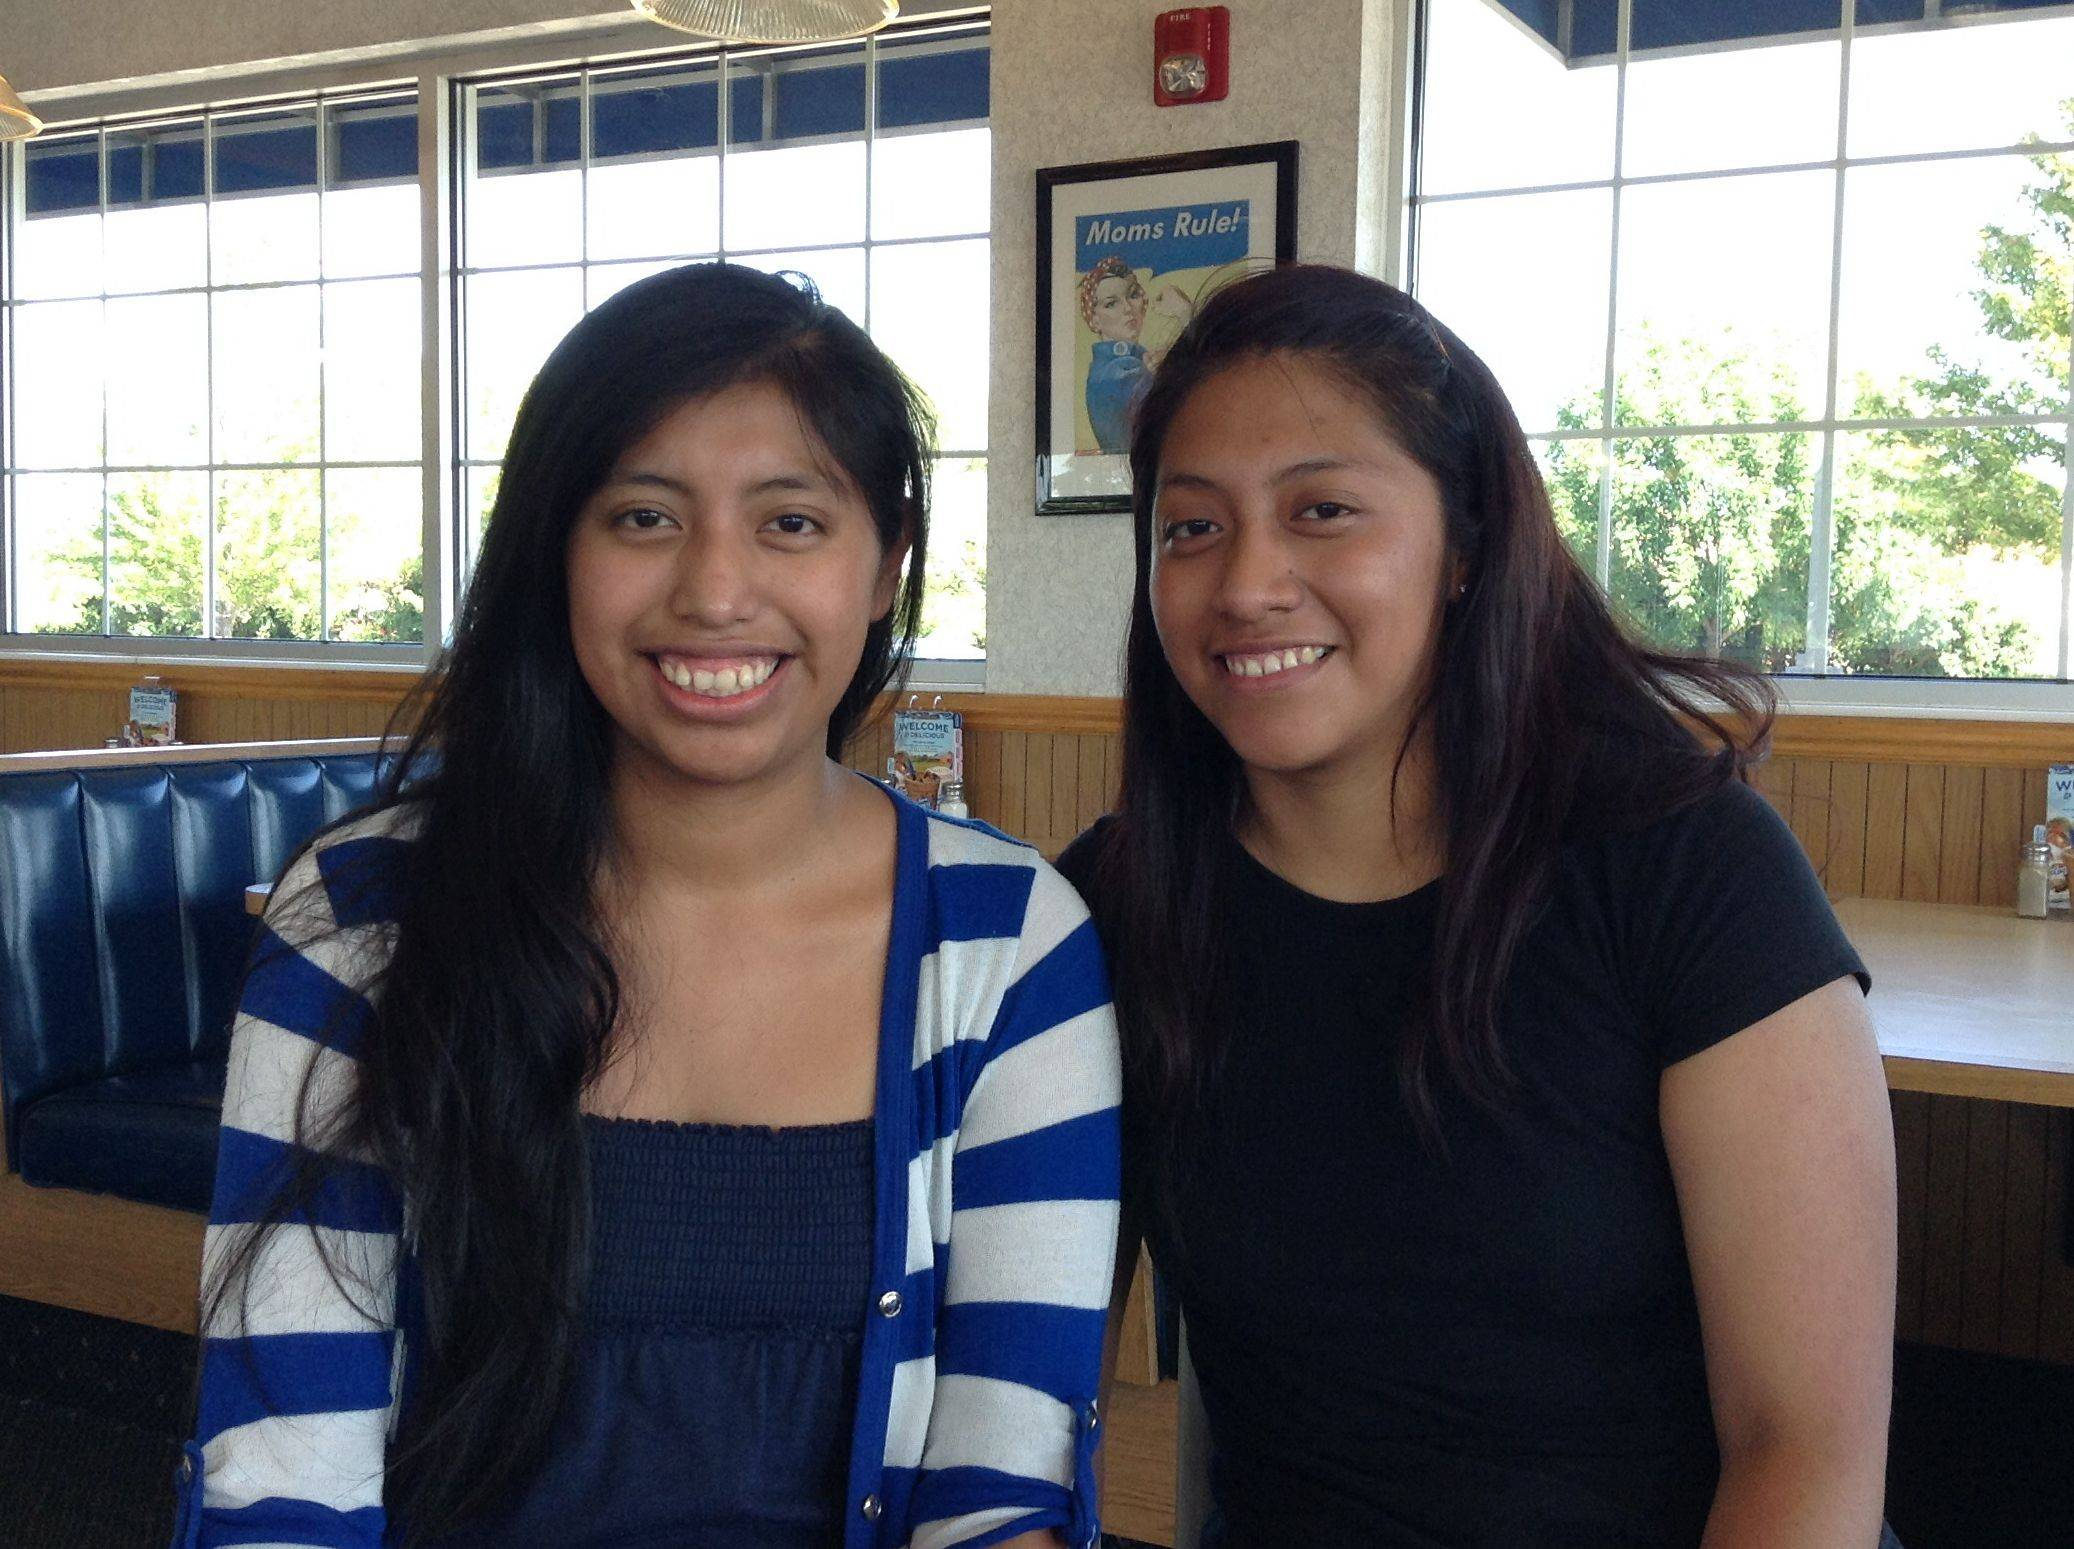 Daisy, left, and Brenda Martinez recently underwent kidney transplant surgery so that Brenda could give one of her kidneys to Daisy, who was diagnosed with end-stage renal disease in 2012. The sisters work together at the Culver's restaurant in Carol Stream.